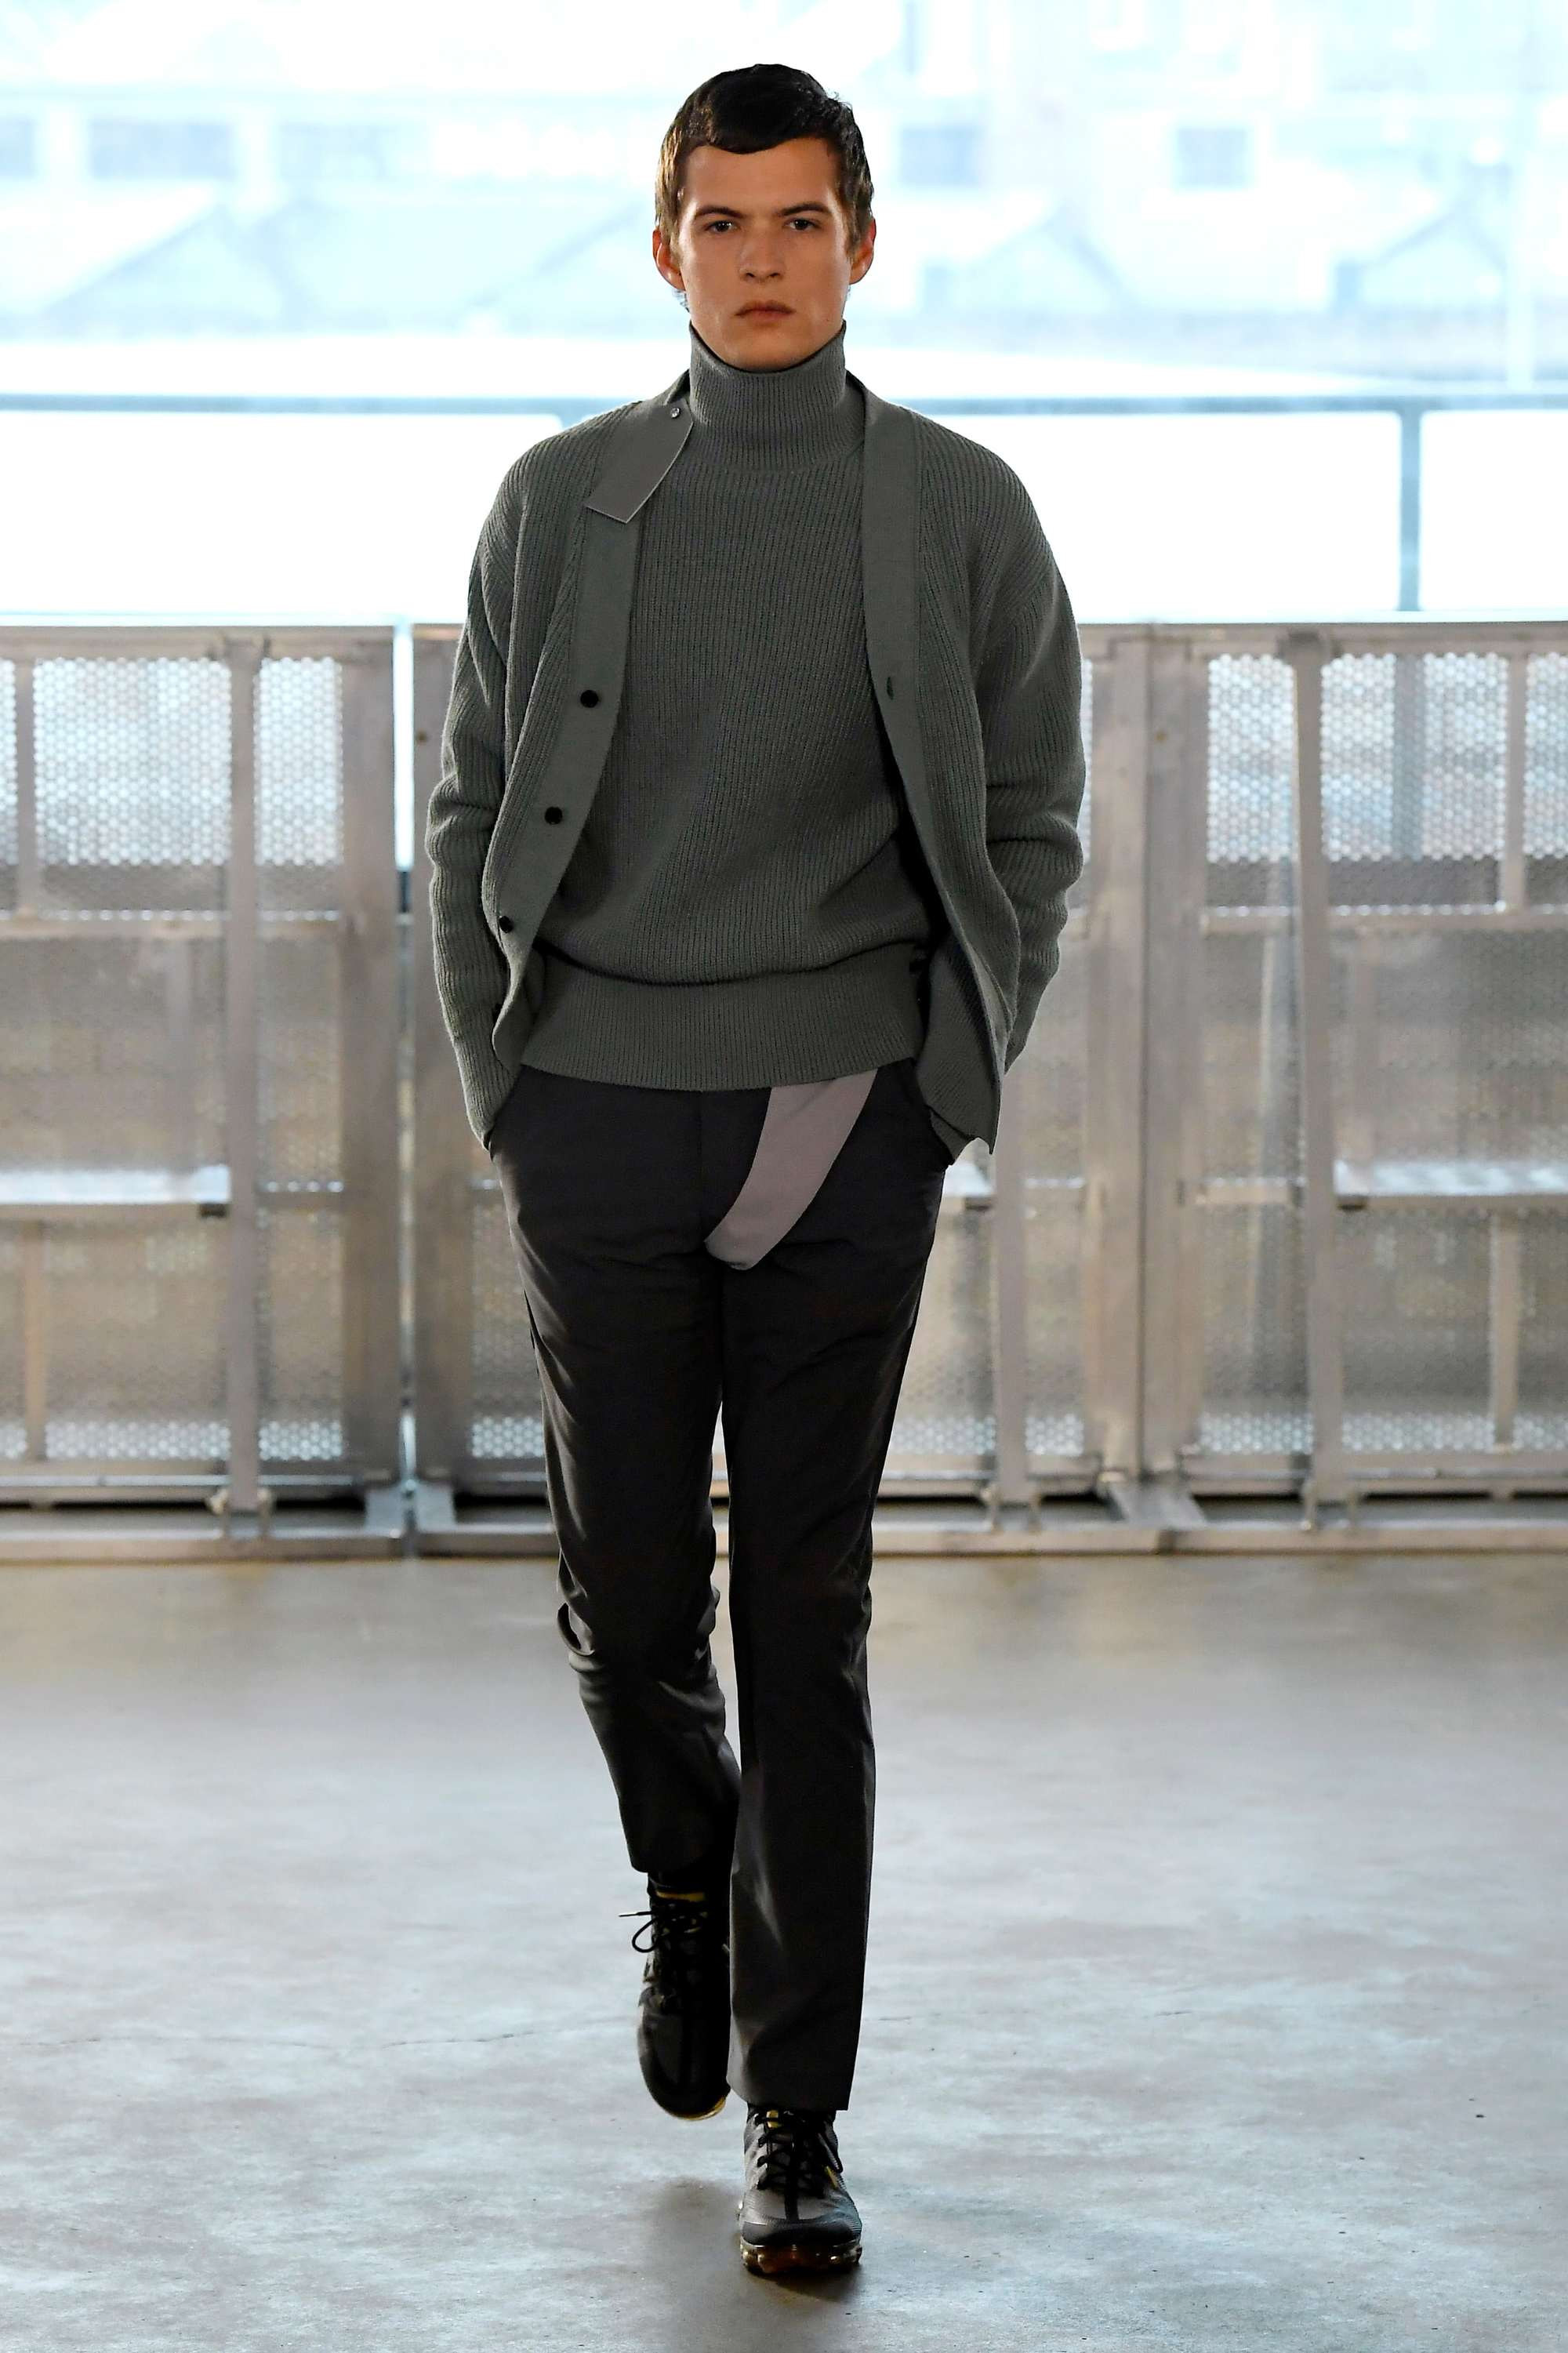 London Fashion Week Men's: Model on Xander Zhou runway with brown suave hairstyle.